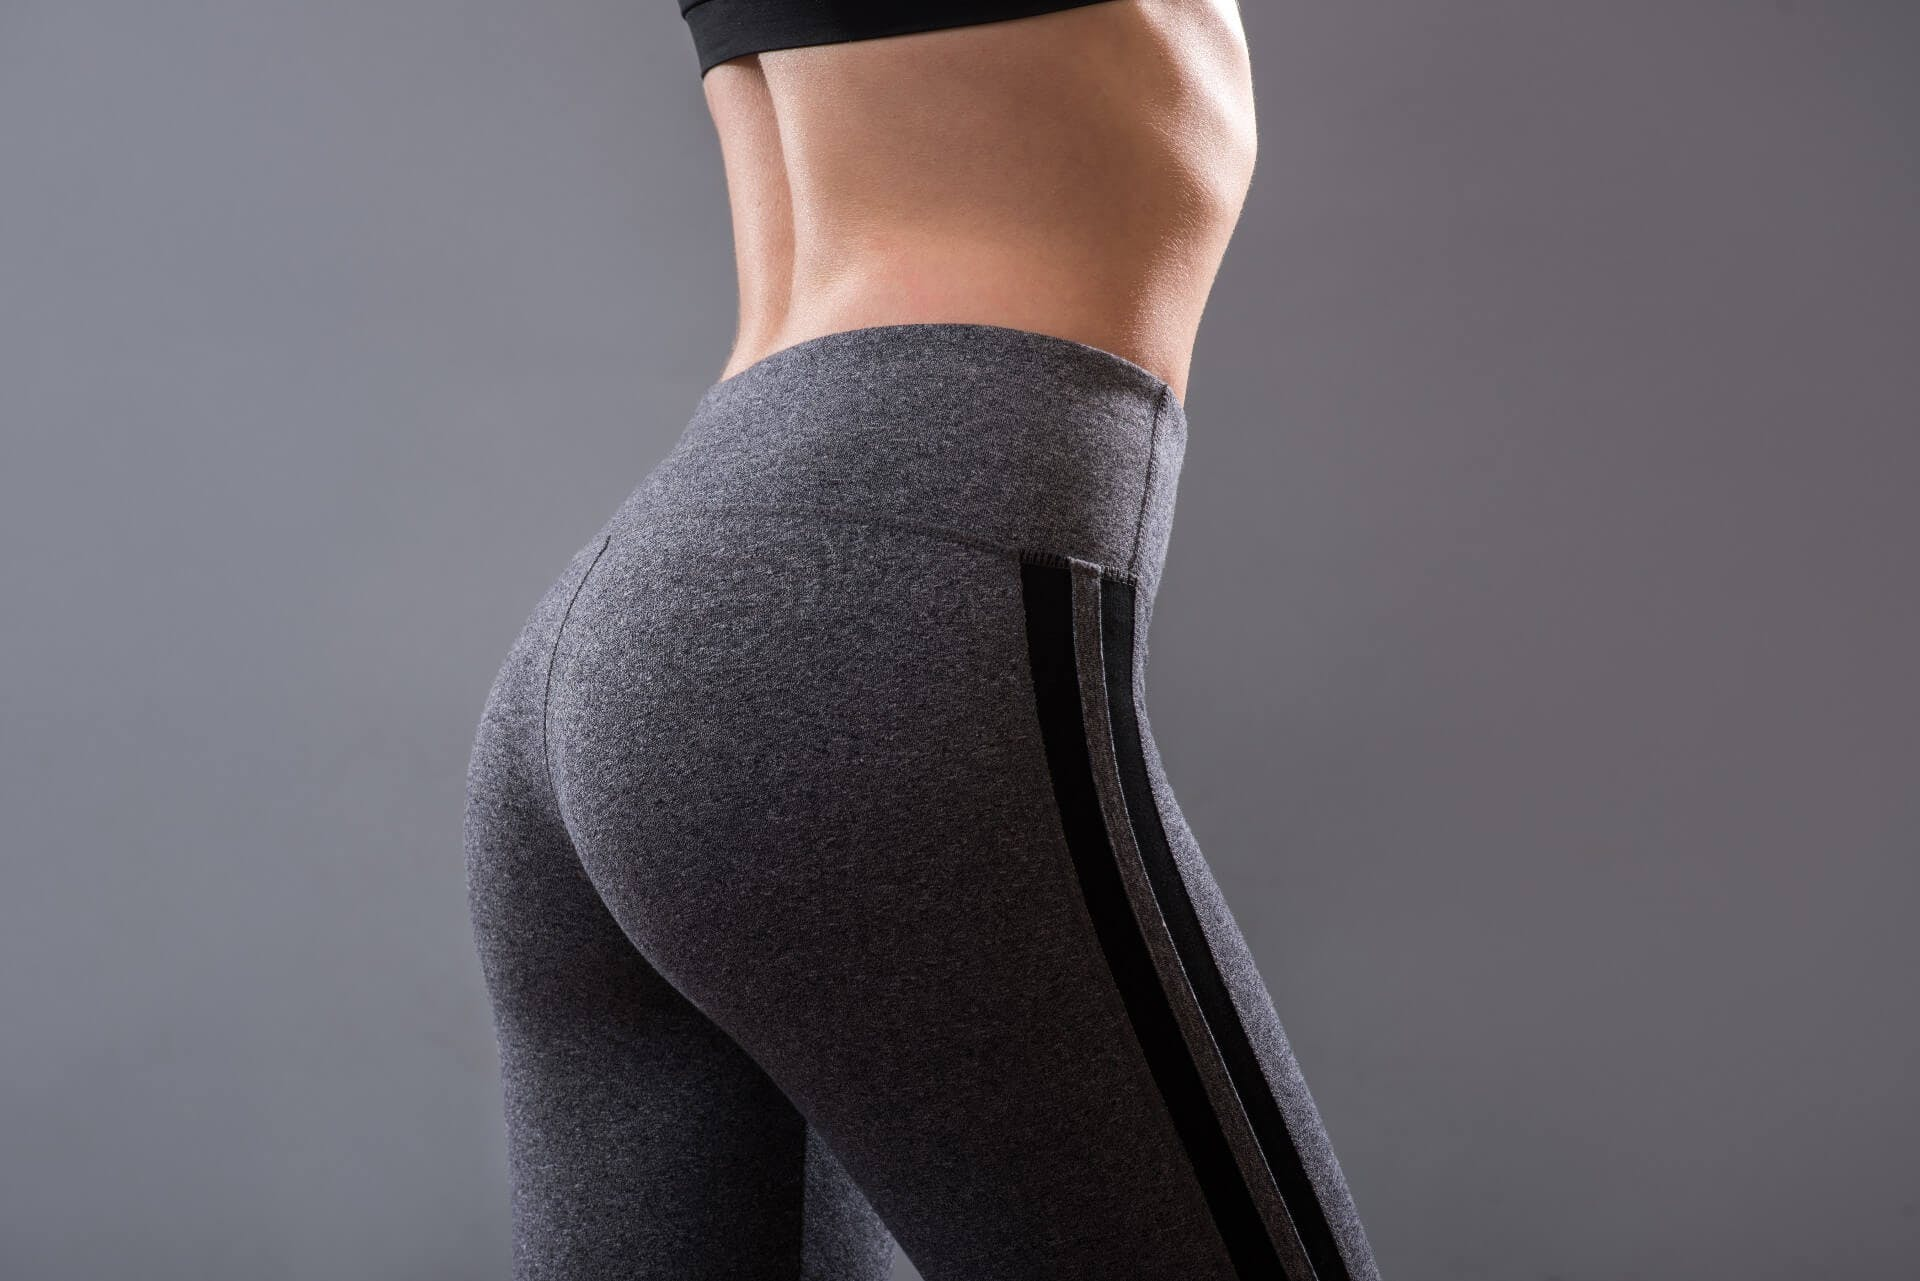 Hip Dips vs Saddlebags